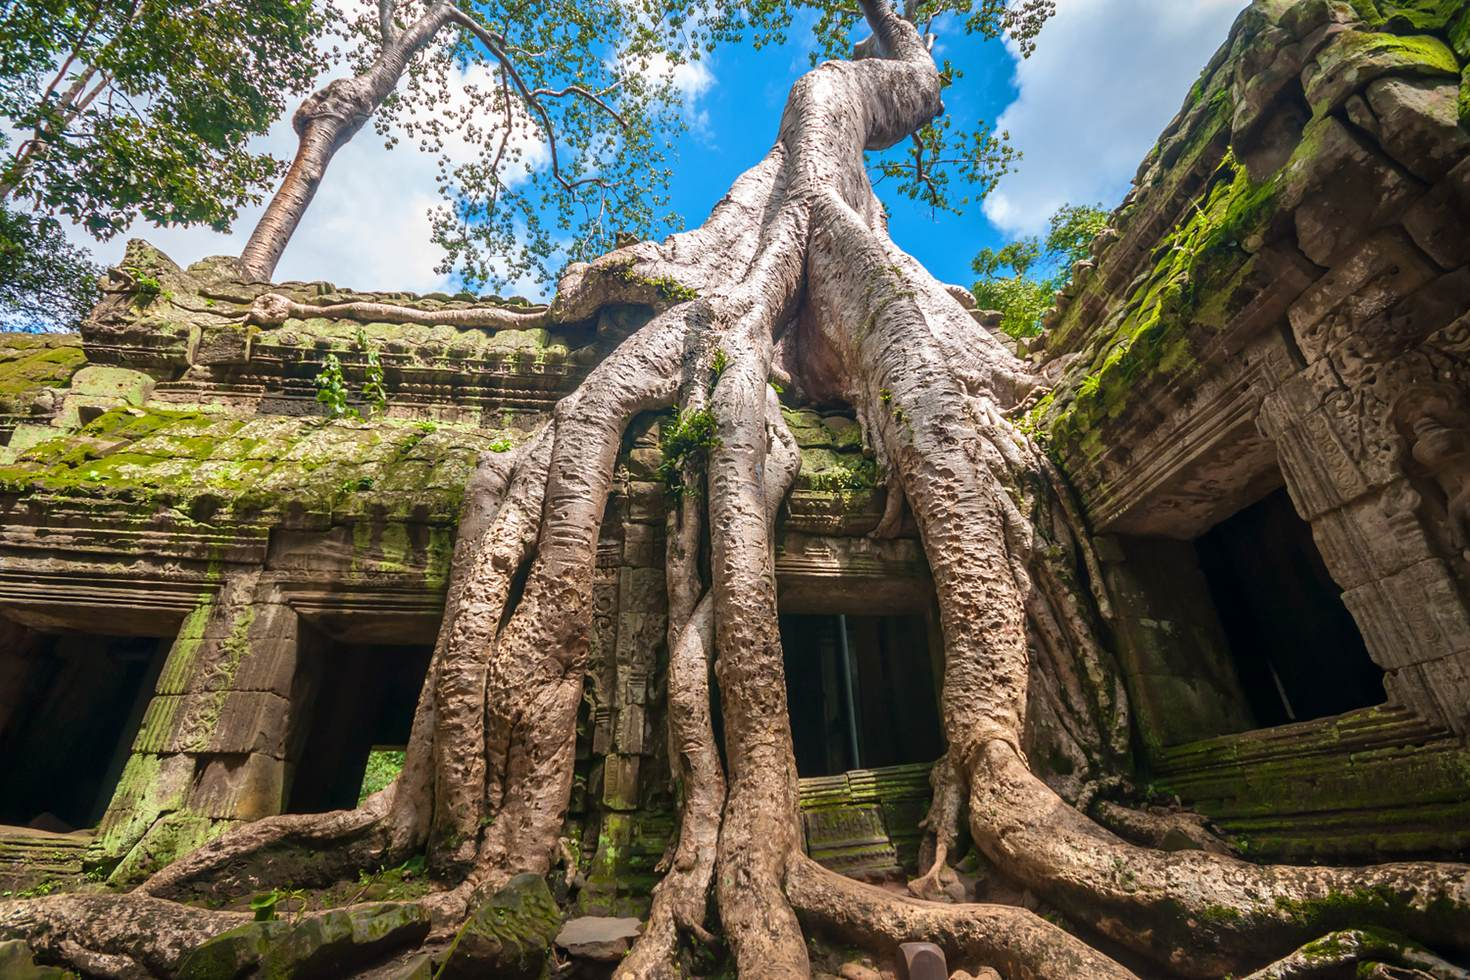 Ancient Khmer architecture ,Ta Prohm temple ruins hidden in jungle in Siem Reap, Cambodia. Ta Prohm is a jungle temple in Angkor.